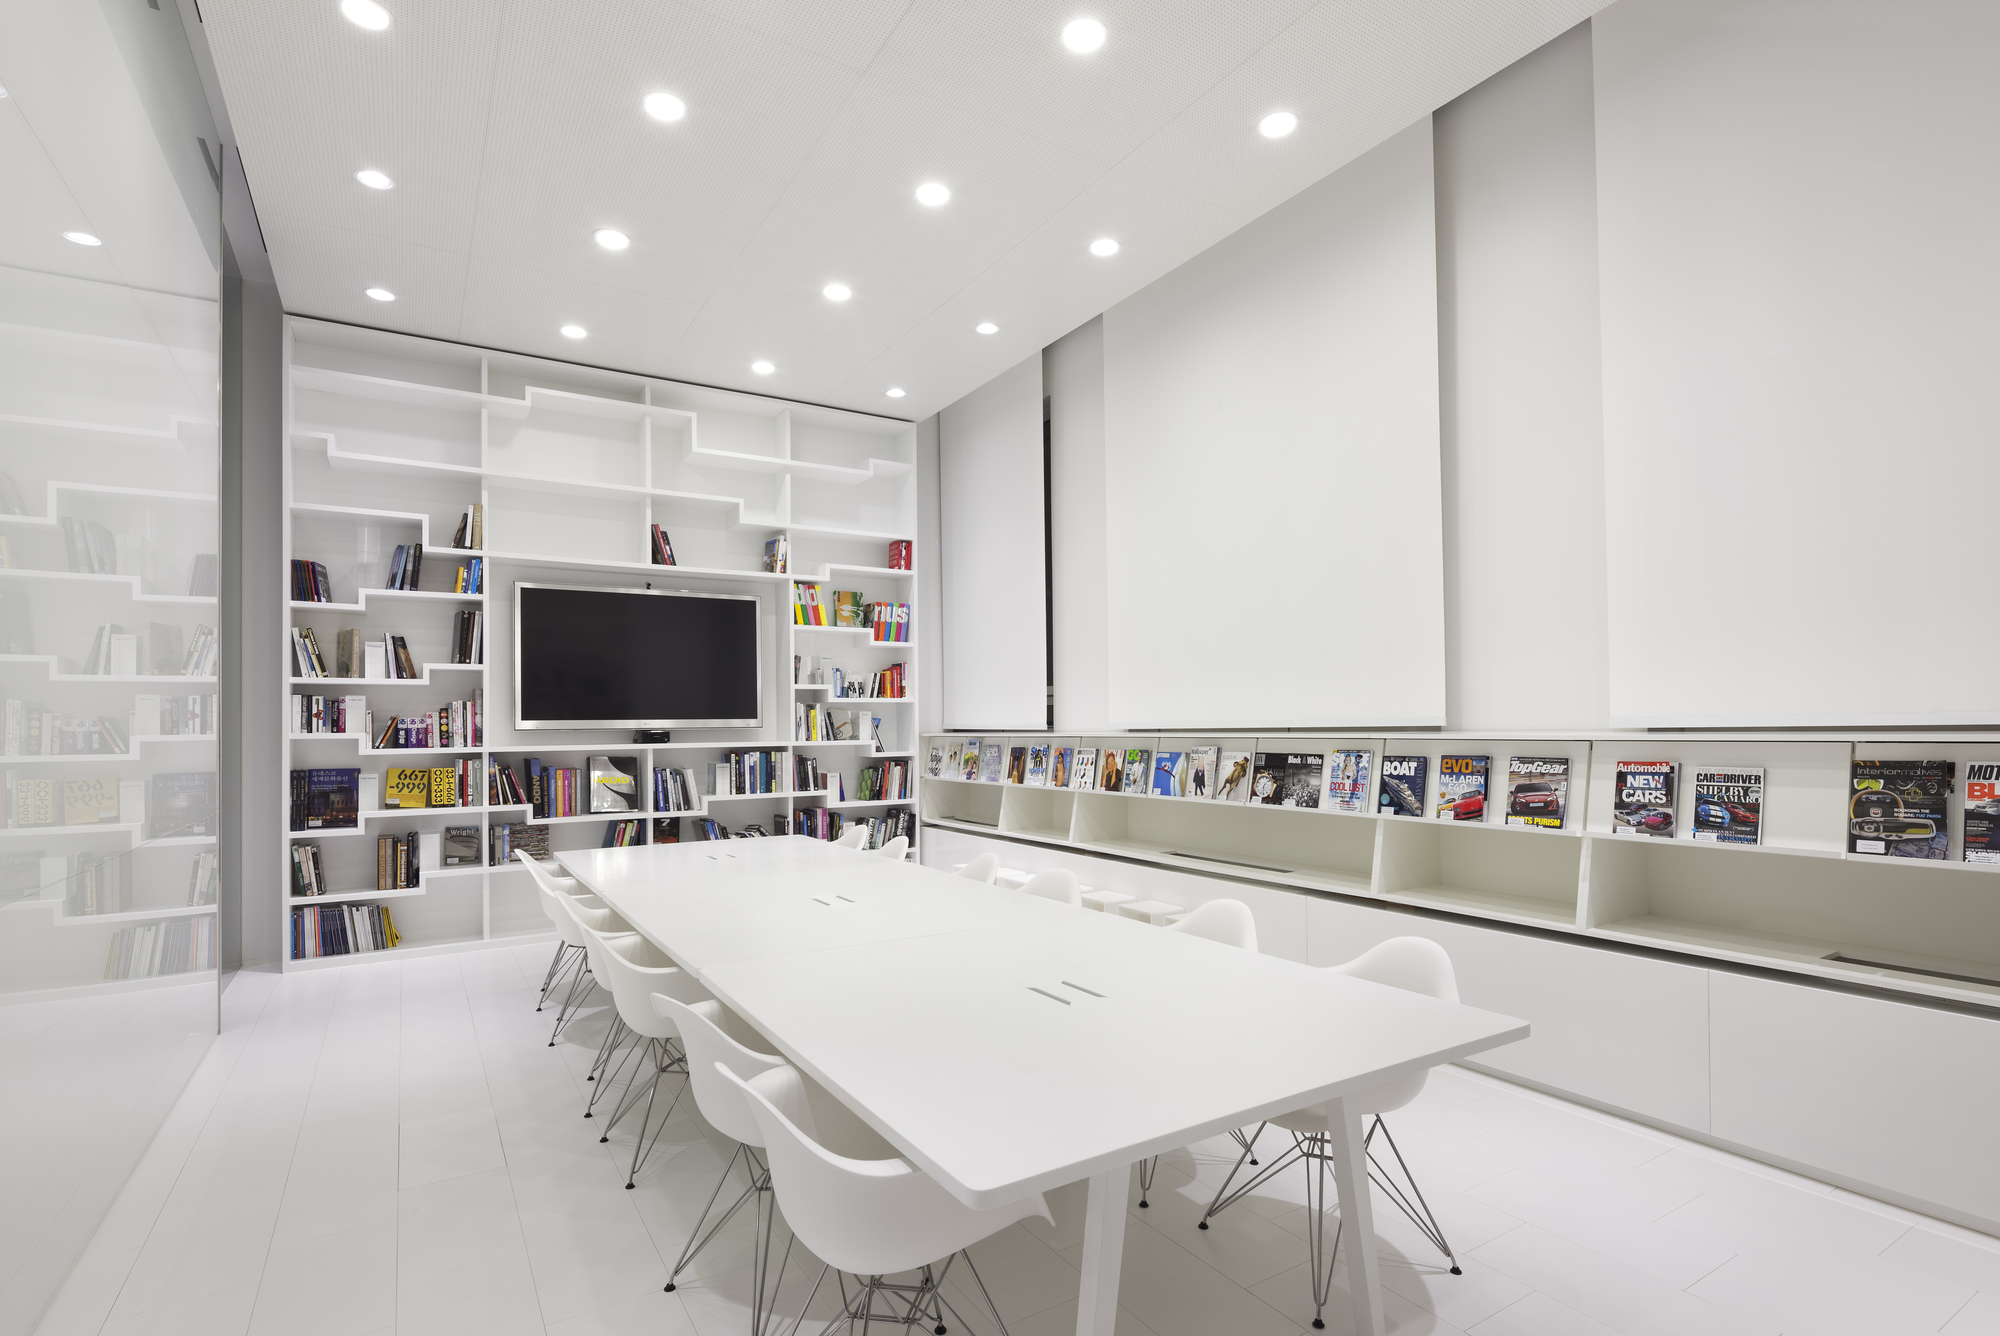 Gallery of hyundai advances design studio delugan meissl associated architects 4 - Studio interior design brescia ...